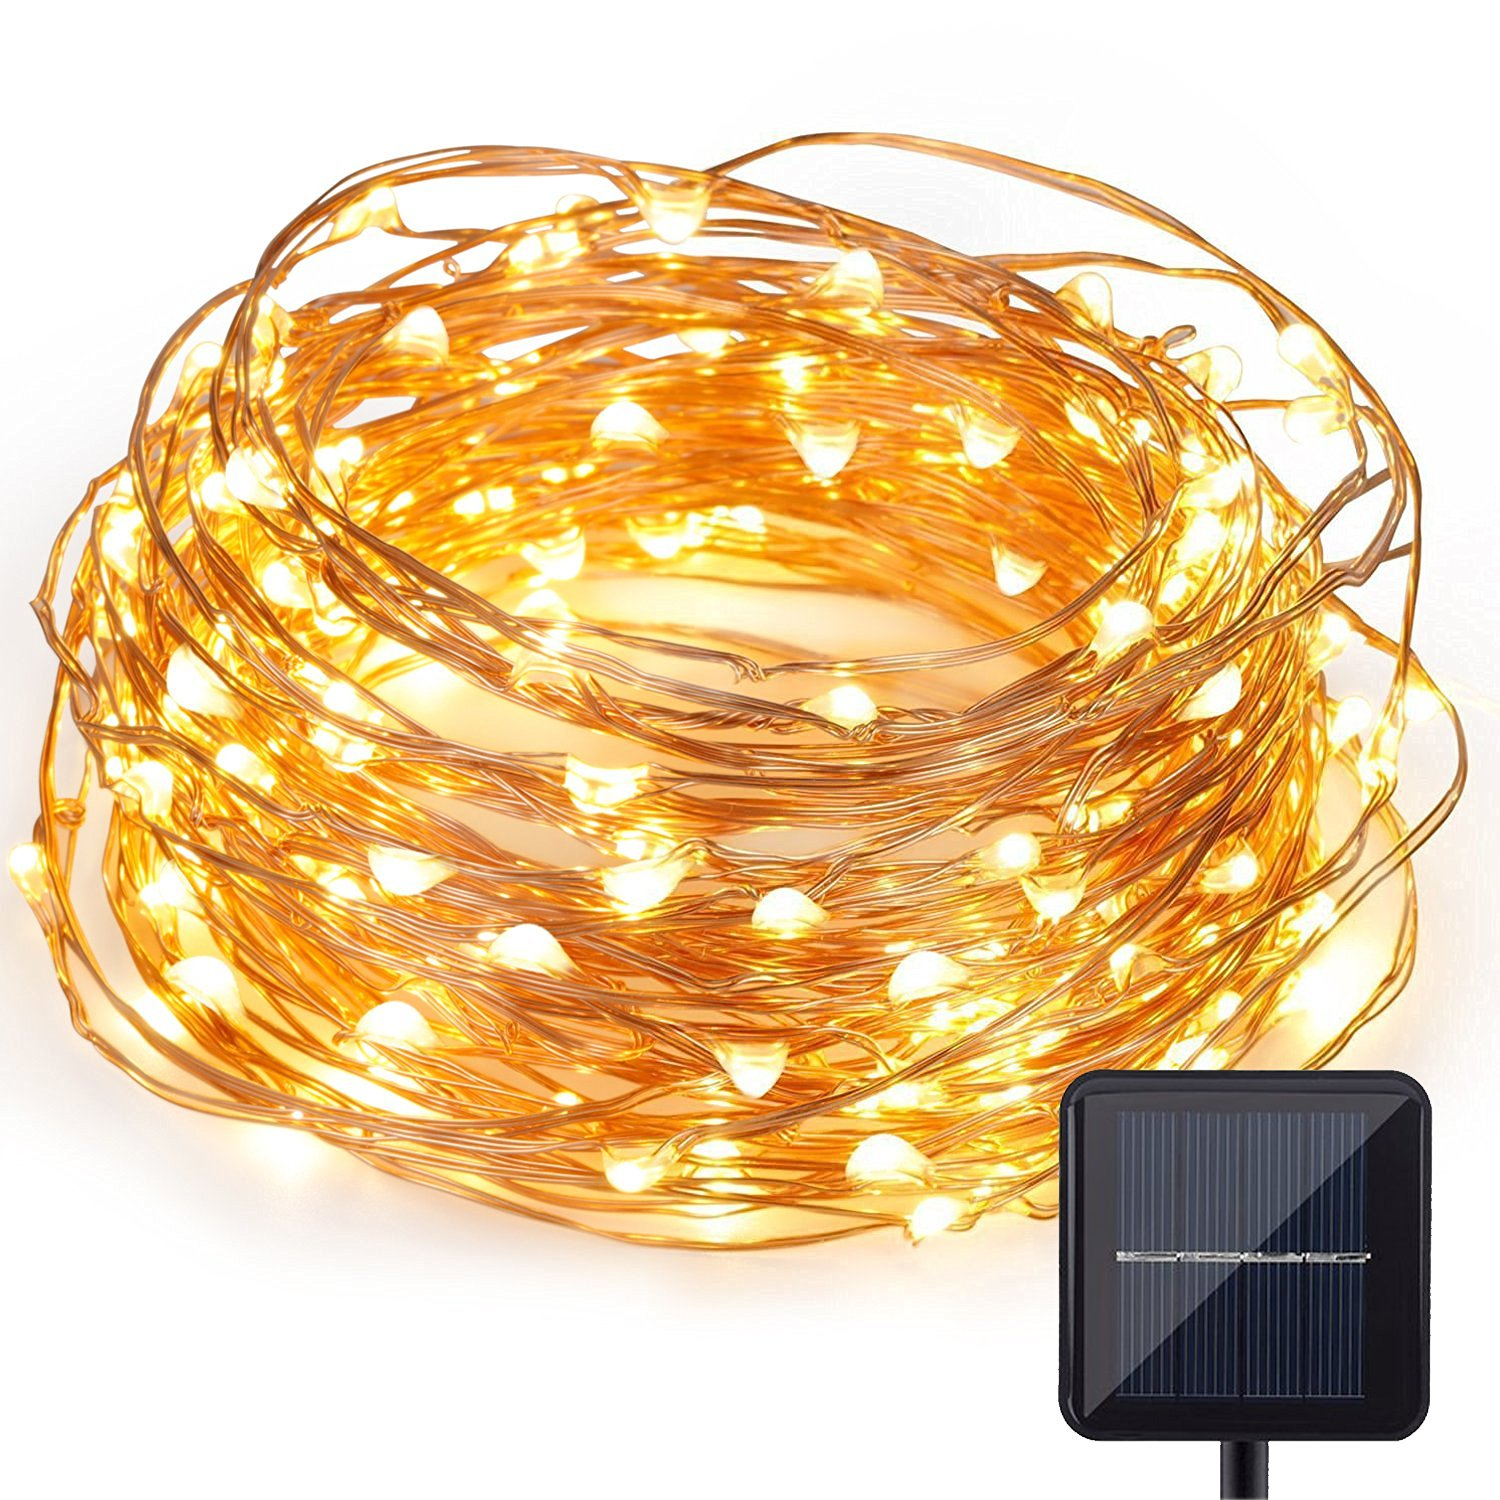 Kohree Solar Powered String Novelty Starry Light Lighting 120 Micro LEDs 20ft Long Ultra Thin String Copper Wire